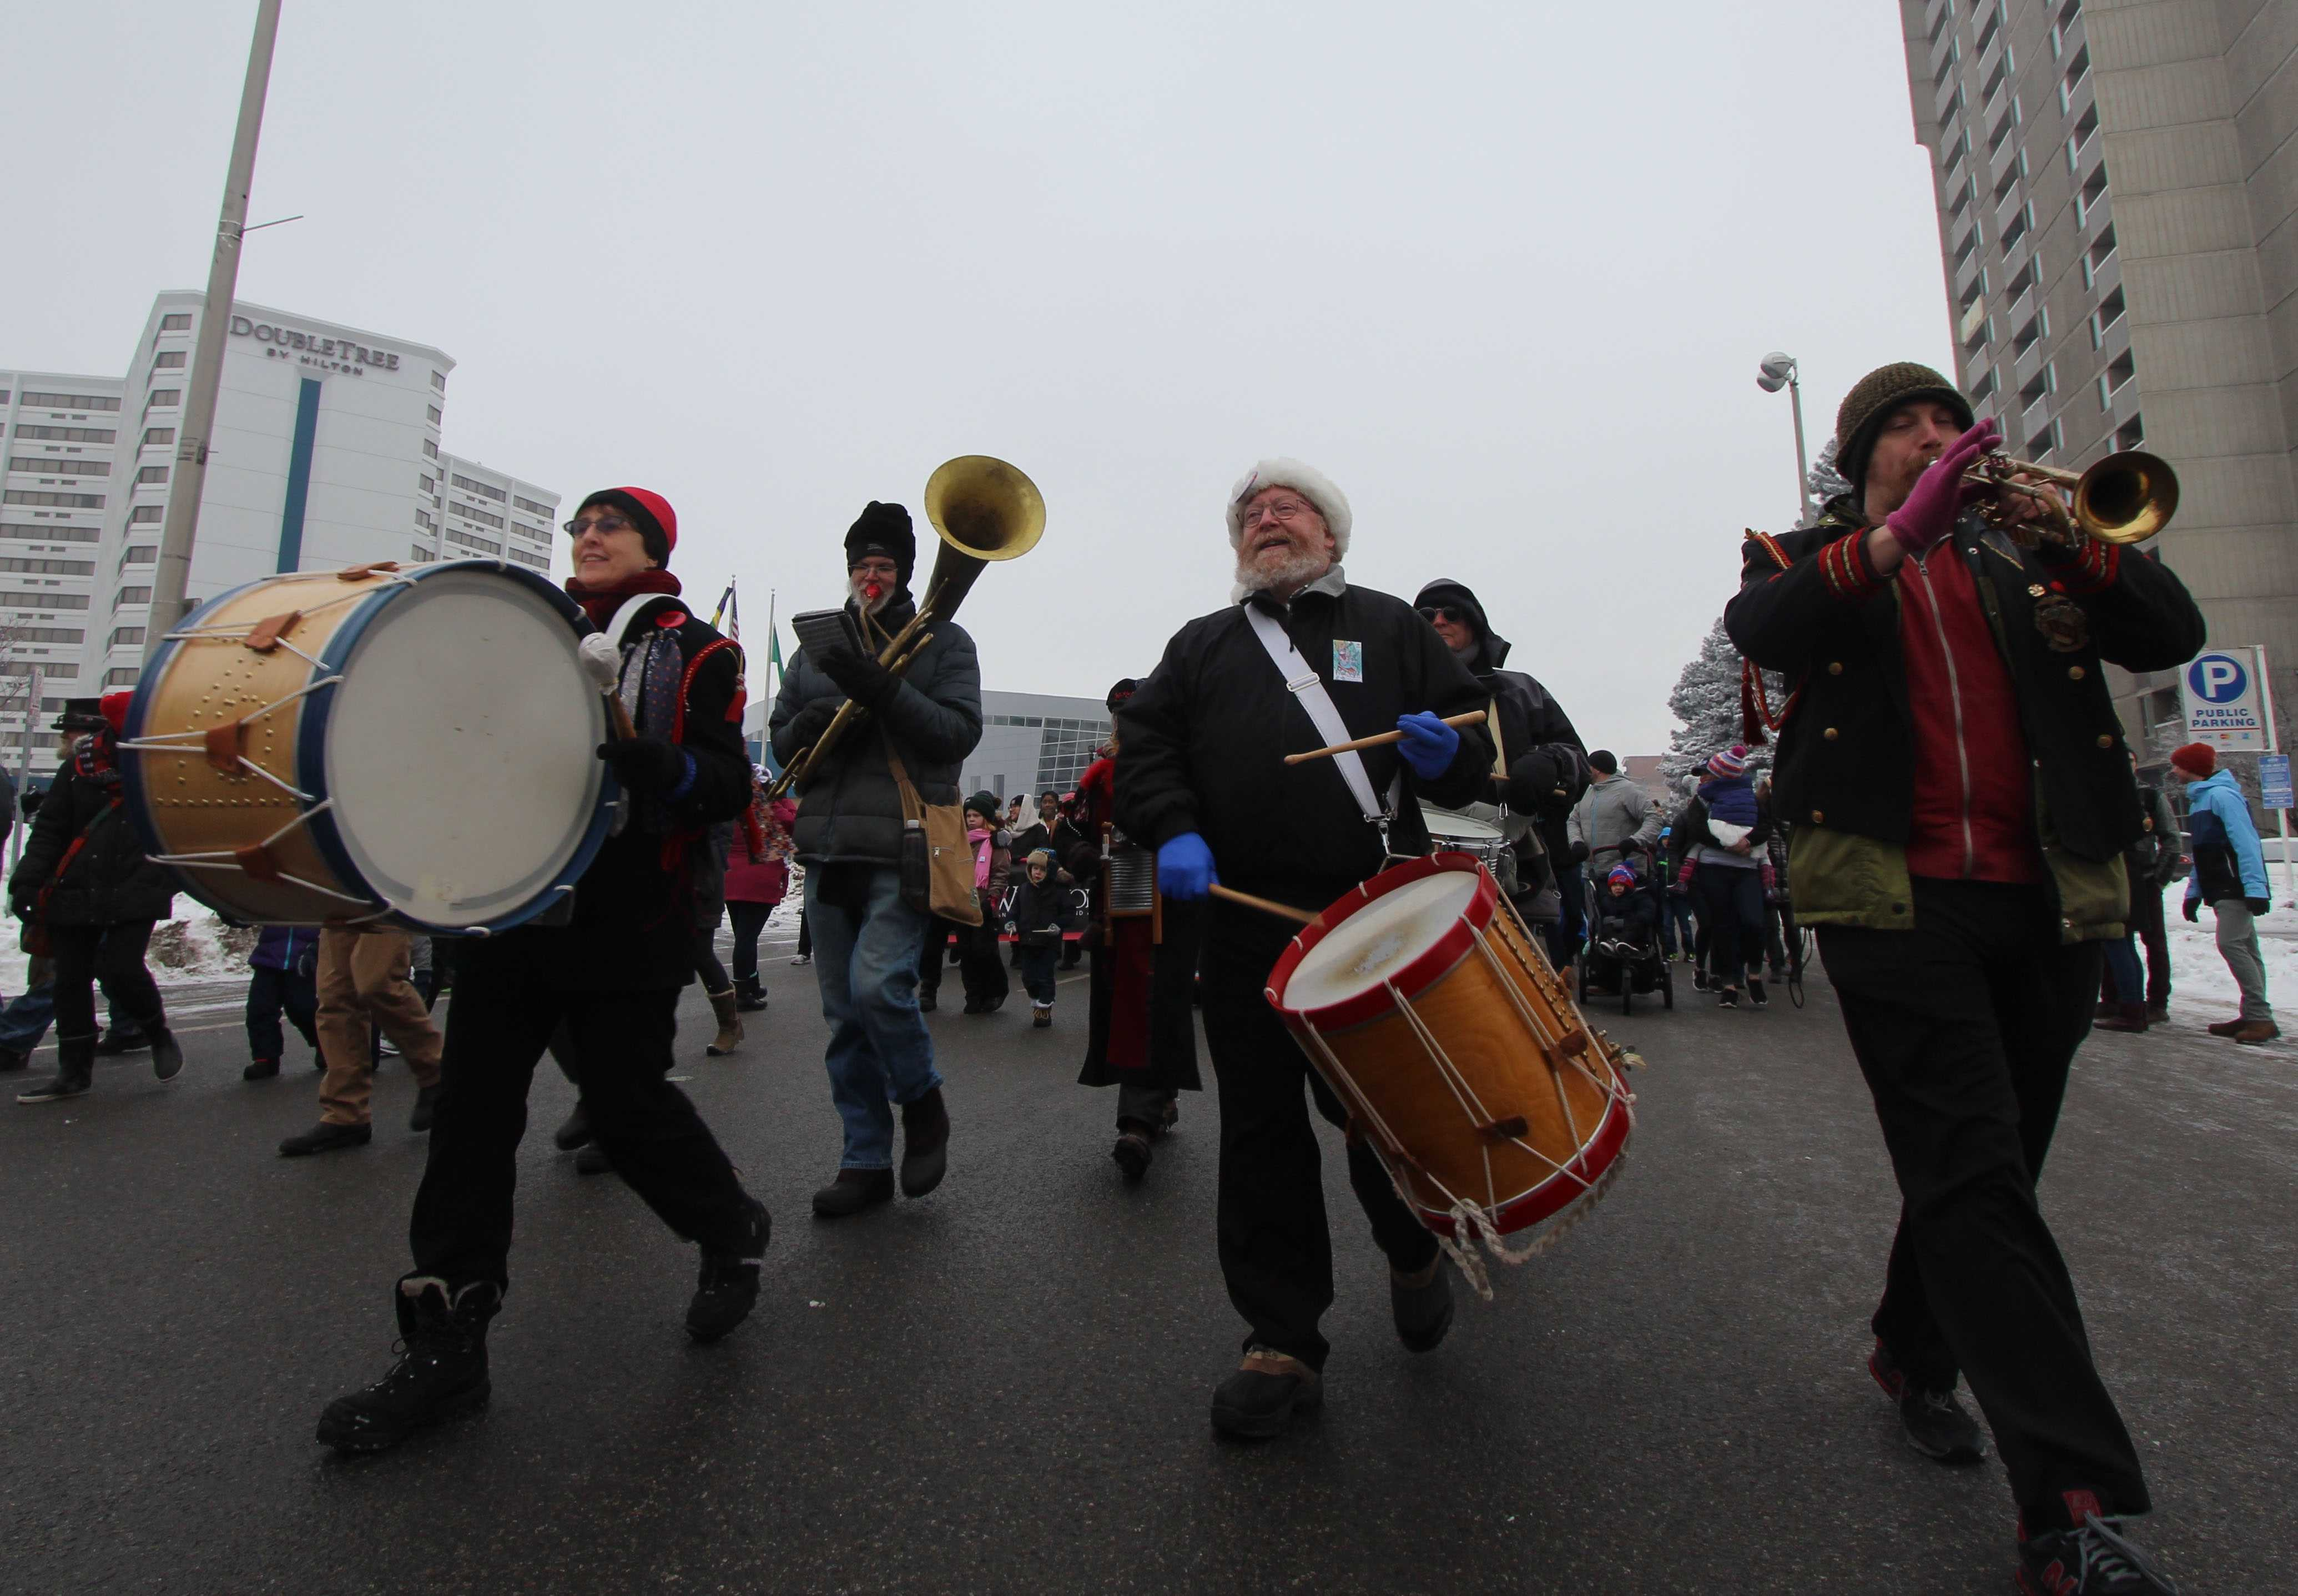 The P-Jammers band energizes the crowd as they march through the streets of downtown Spokane.